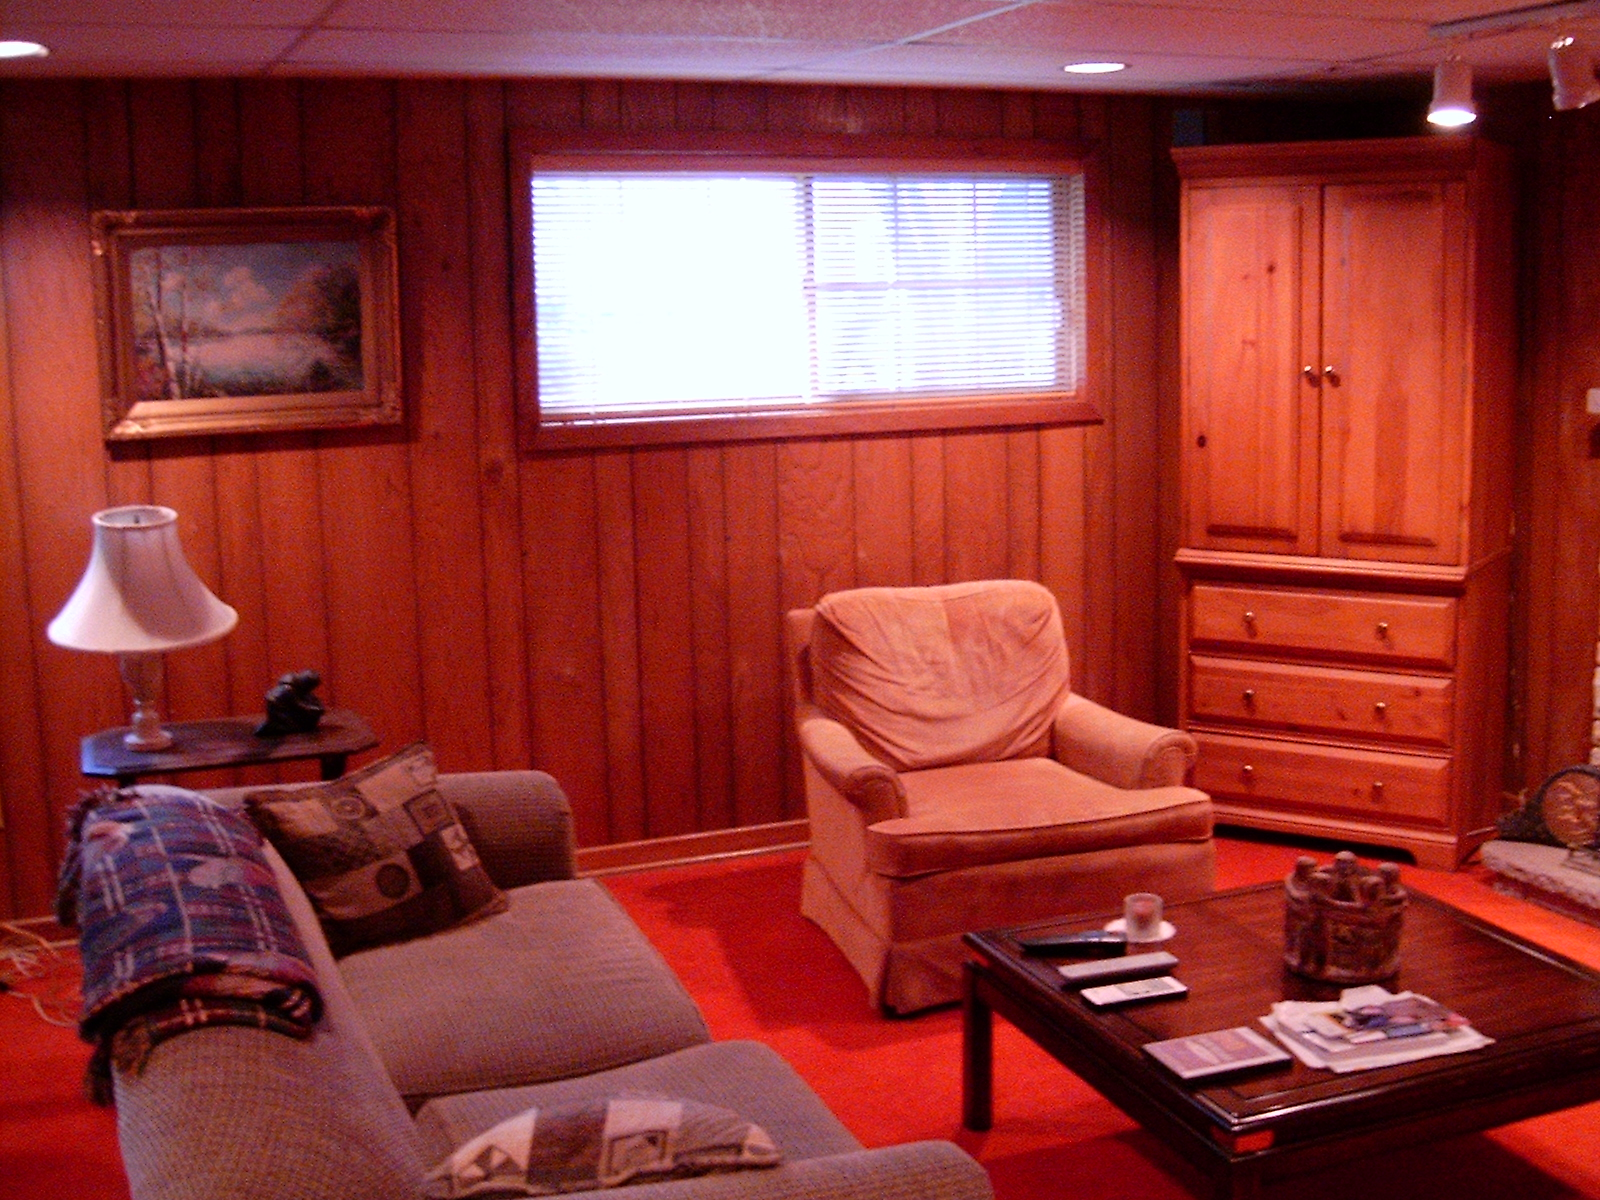 Design Tricks To Transform A Family Room With Wood Paneling Marie ...